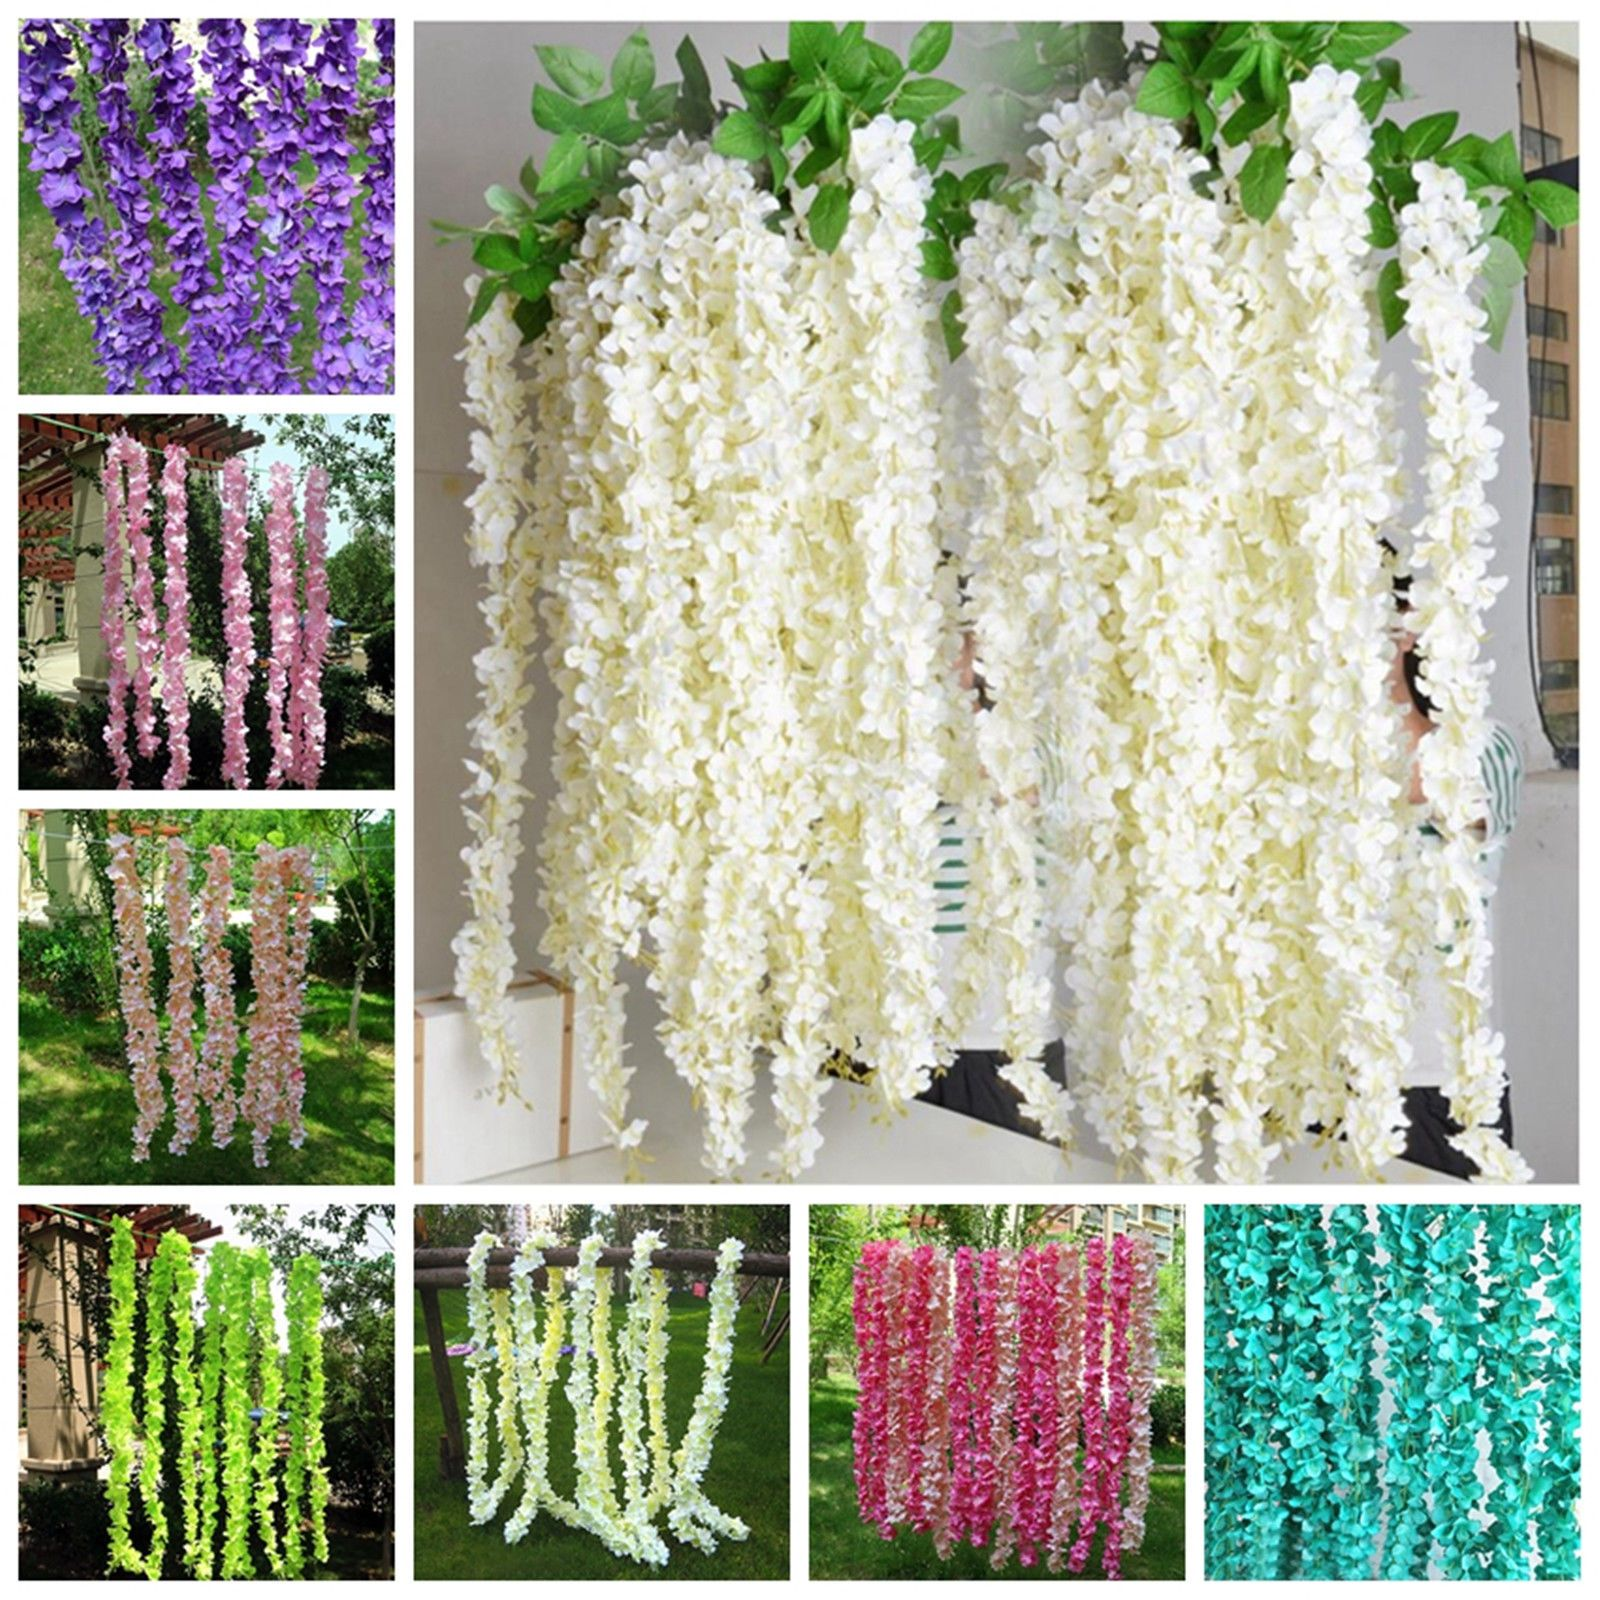 273 1pcs artificial silk hydrangea flowers vine diy wall hanging 273 1pcs artificial silk hydrangea flowers vine diy wall hanging wedding decoration ebay junglespirit